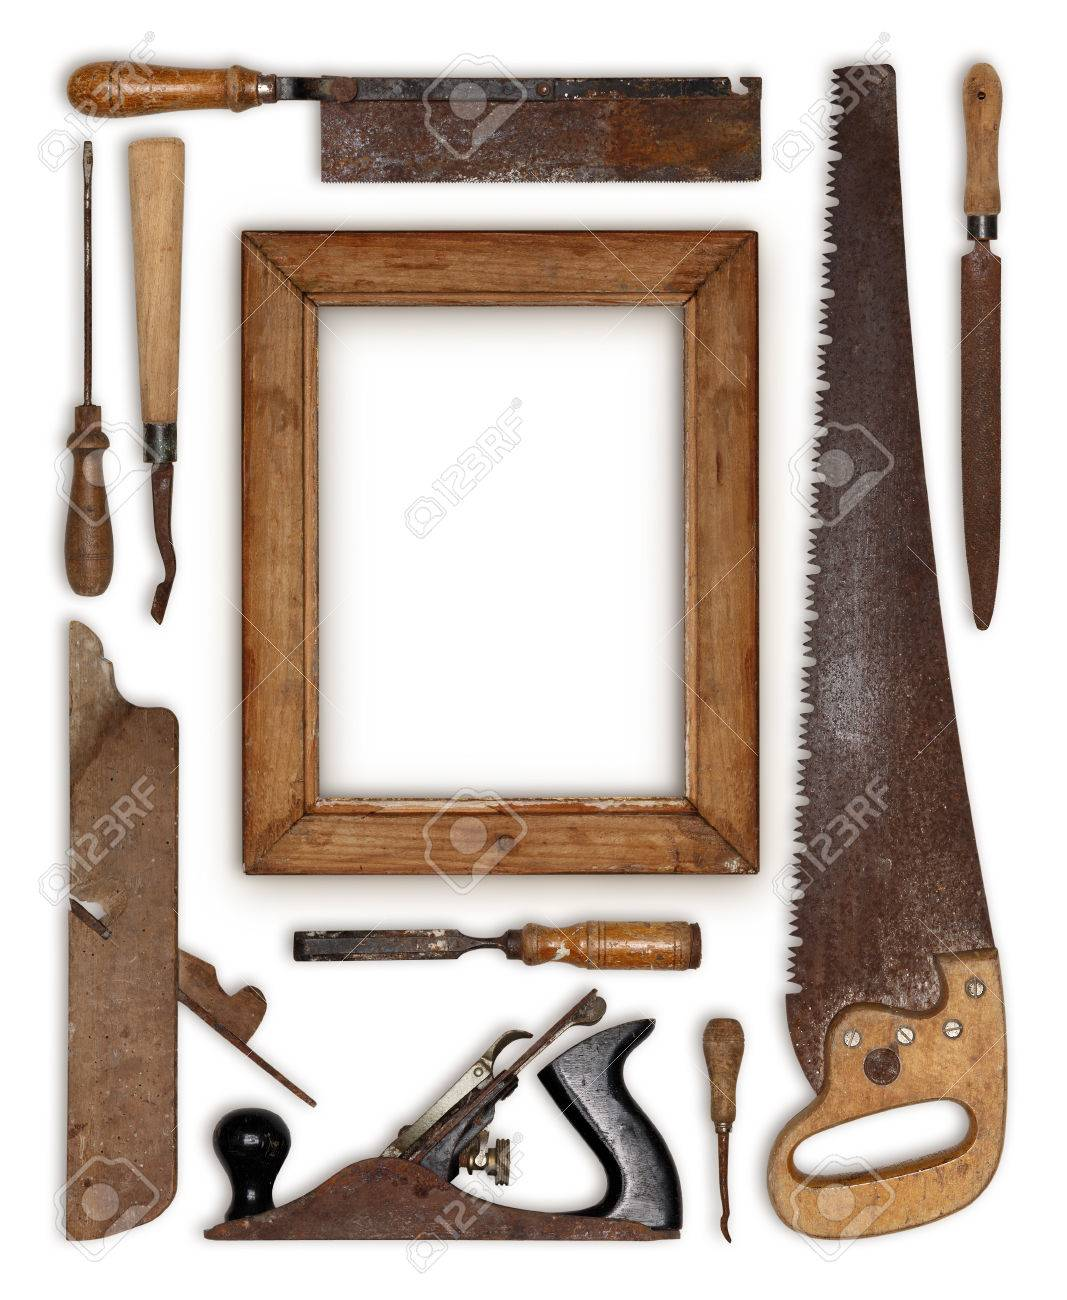 stock photo collage work wood tools carpenter forming a frame